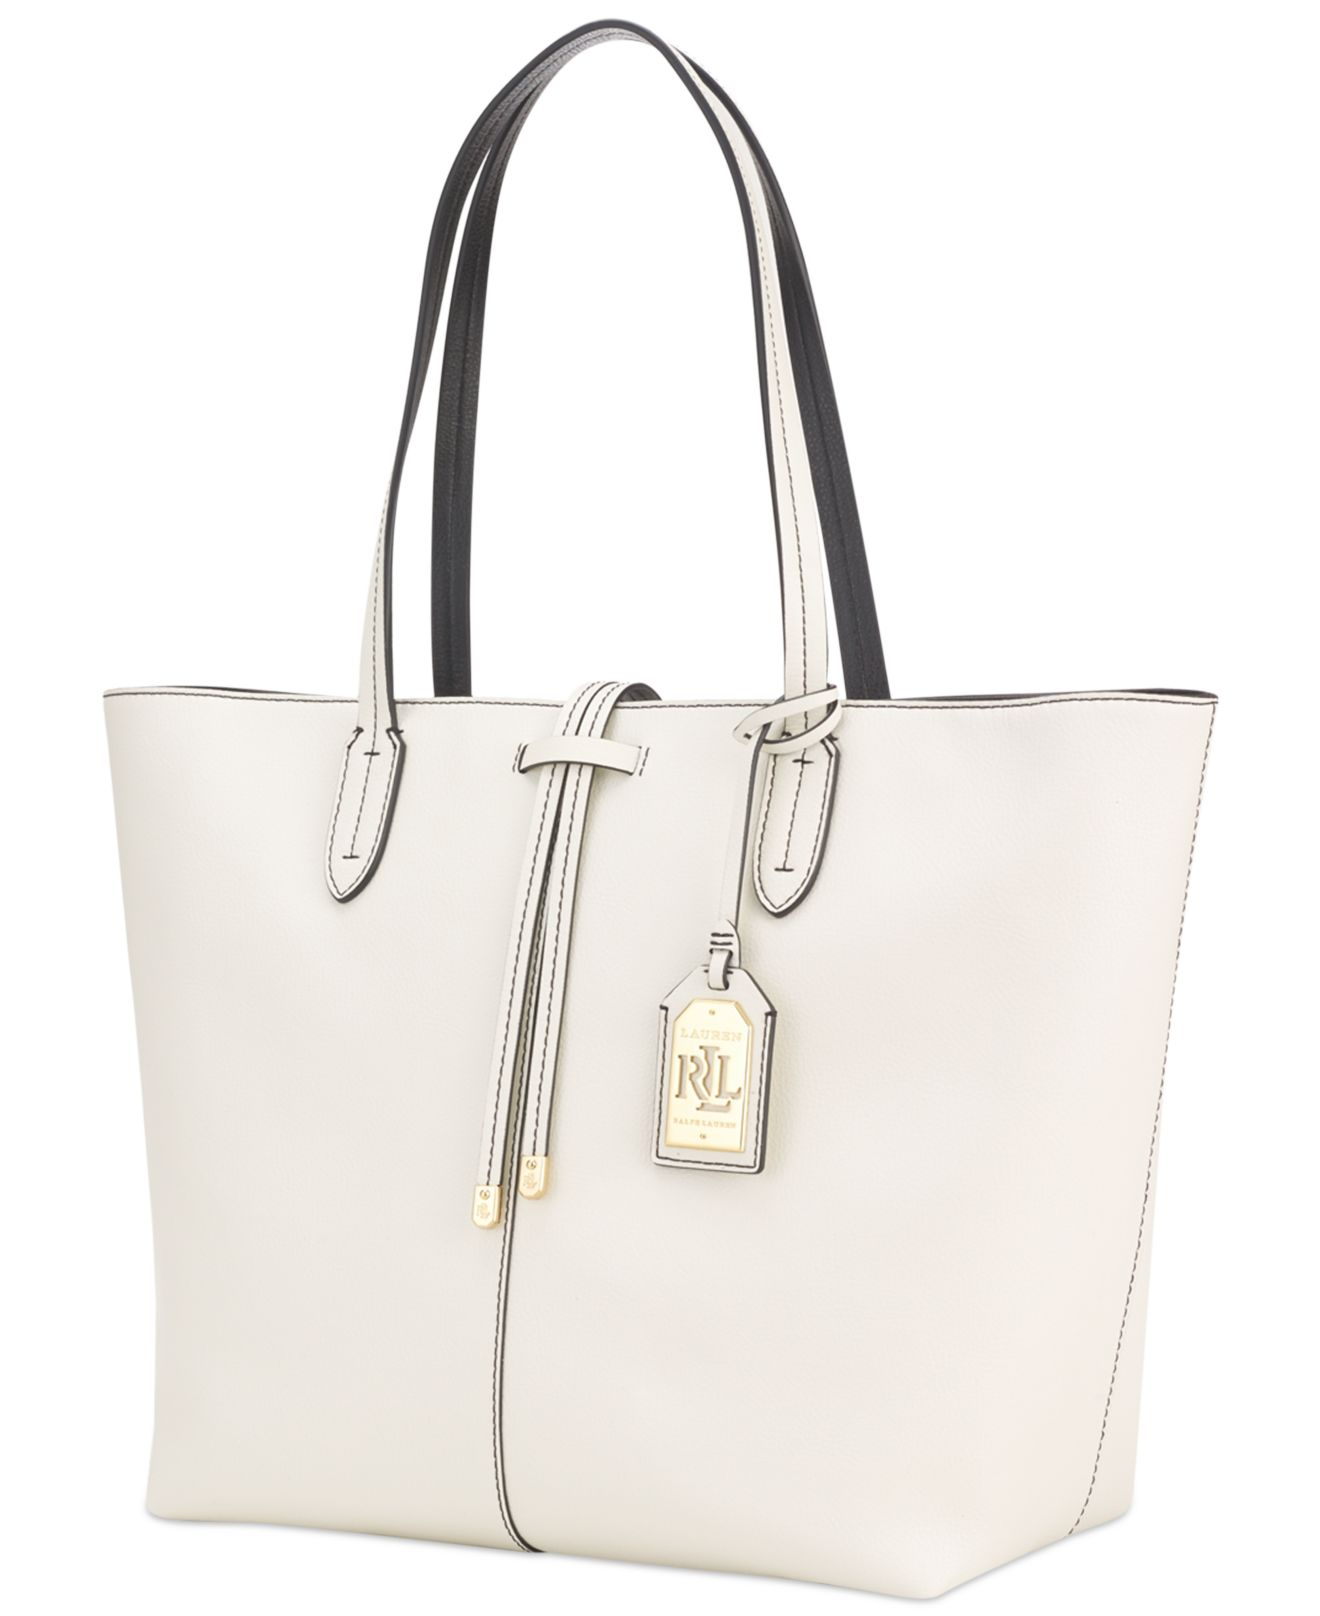 Ralph Lauren Tote Laukku : Lauren by ralph crawley unlined tote in white